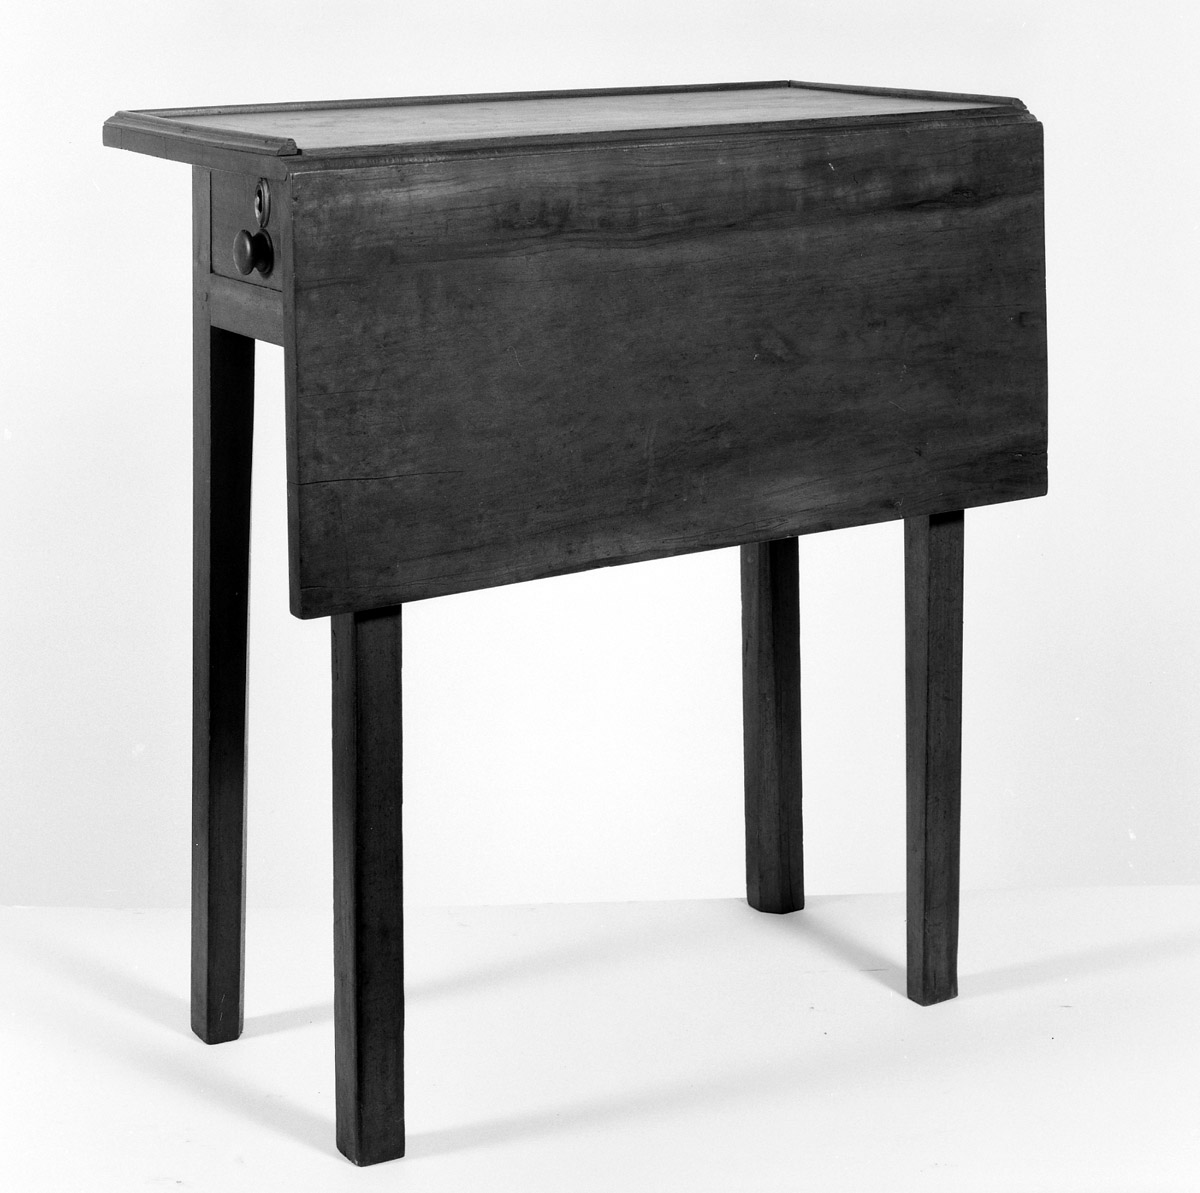 1957.0040.005 Drop-leaf table